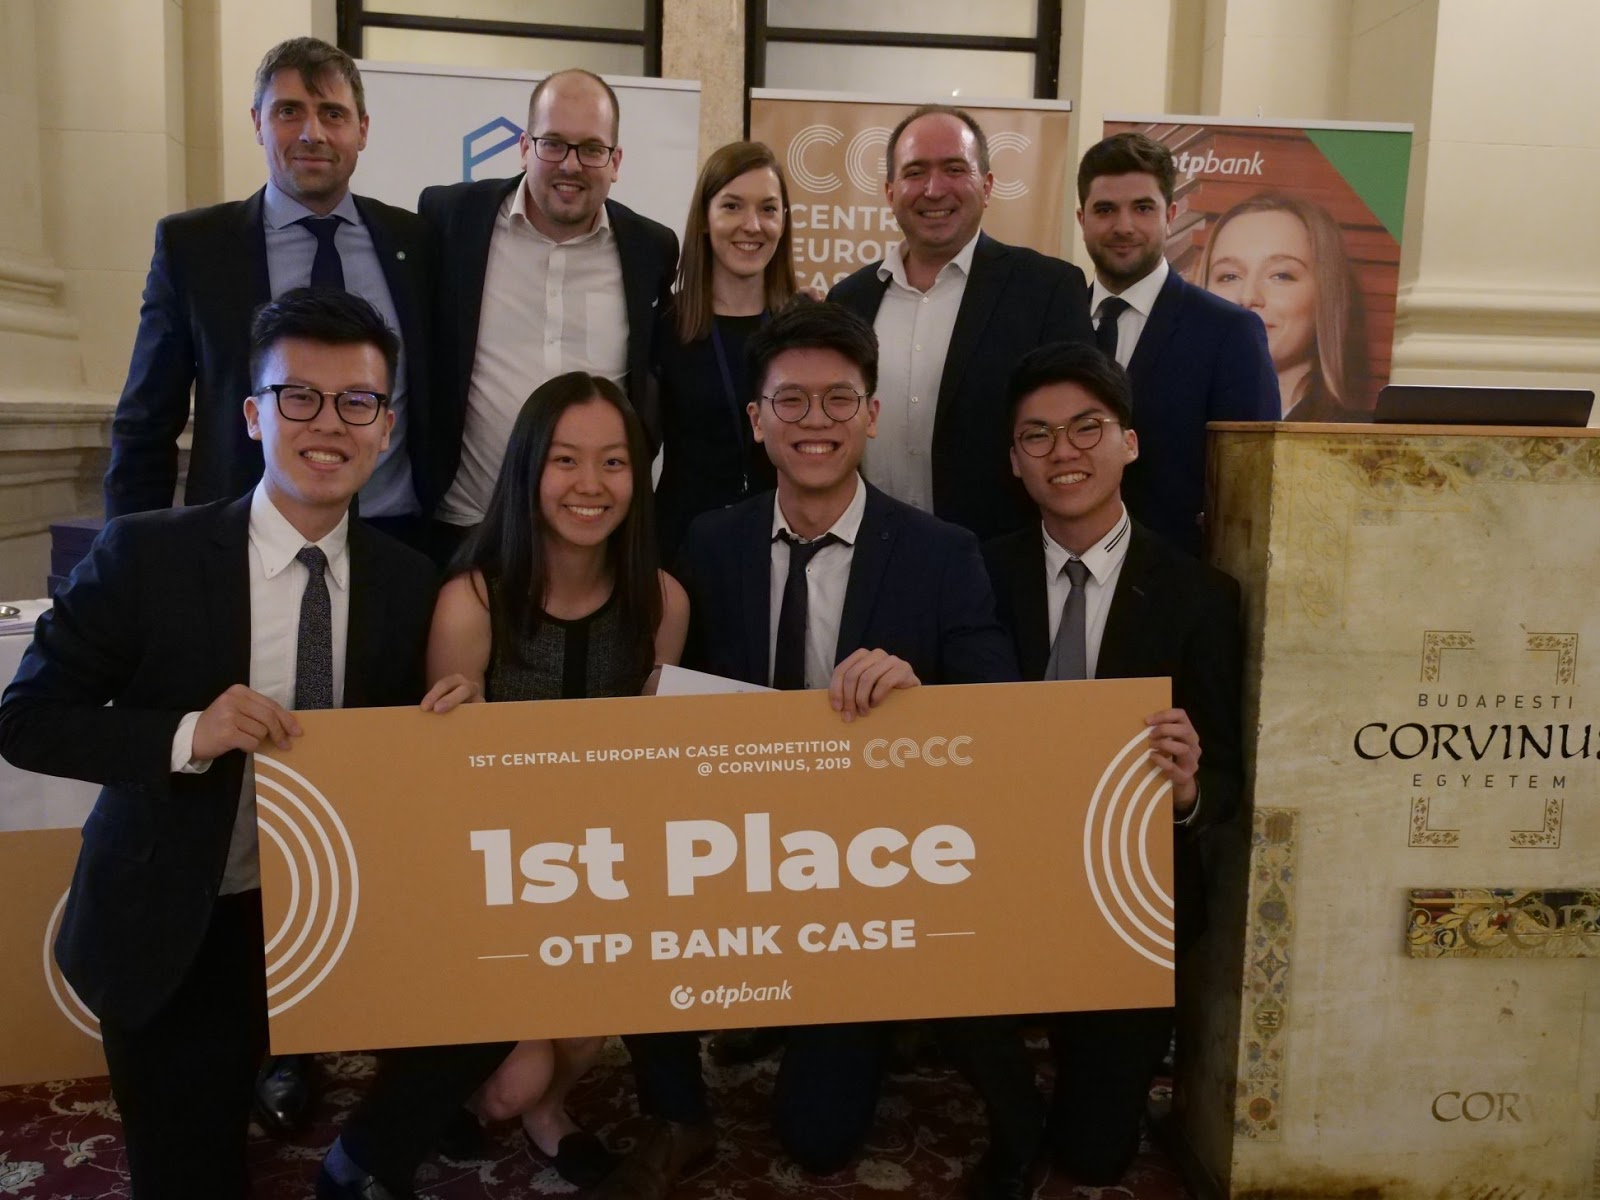 Batch 9 students triumphed at the 2019 Central European Case Competition